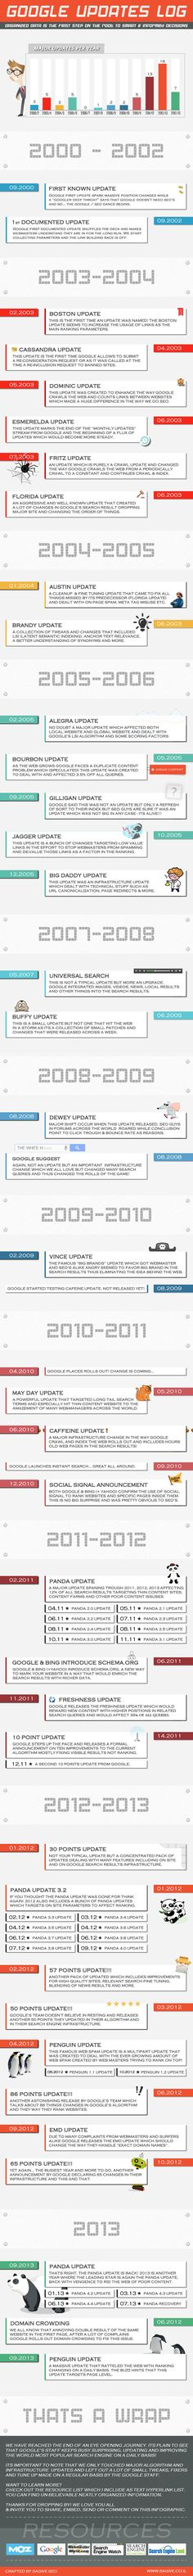 Infographic: Google Search algorithm Updates history-Log From 2000 To 2013